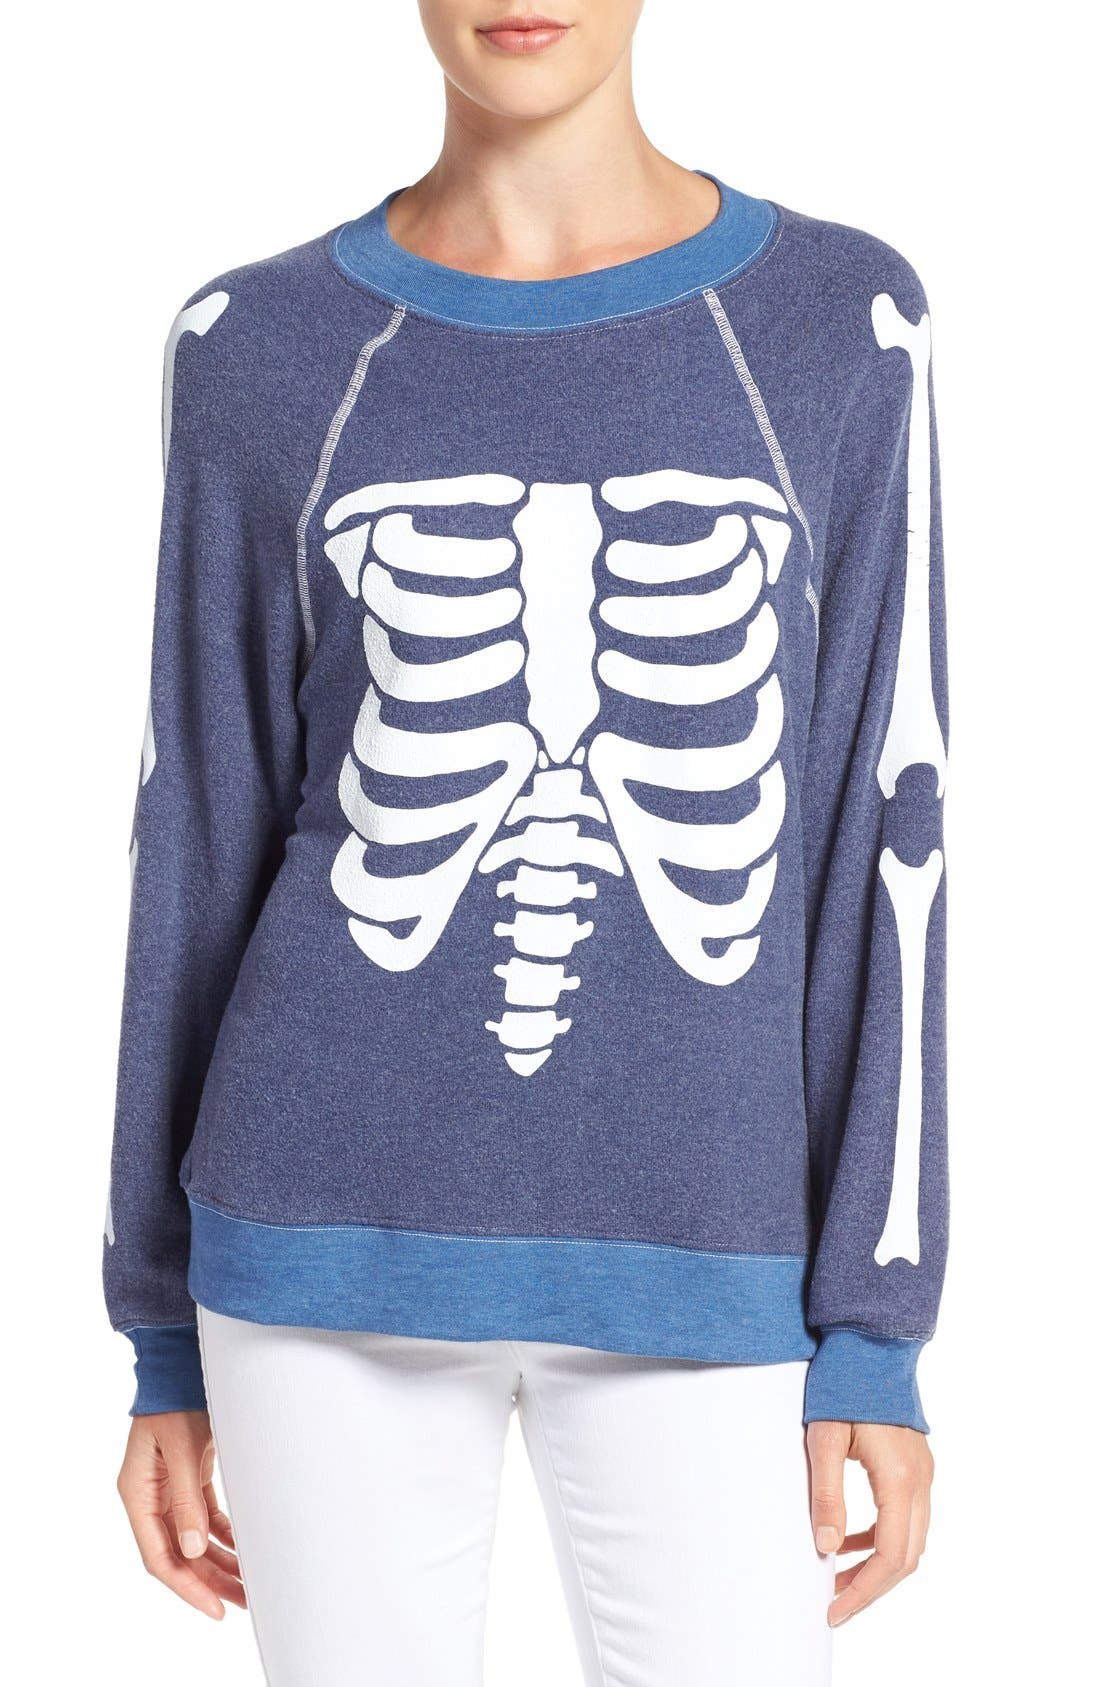 Alternate Image 1 Selected - Wildfox 'Inside Out' Skeleton Print Pullover